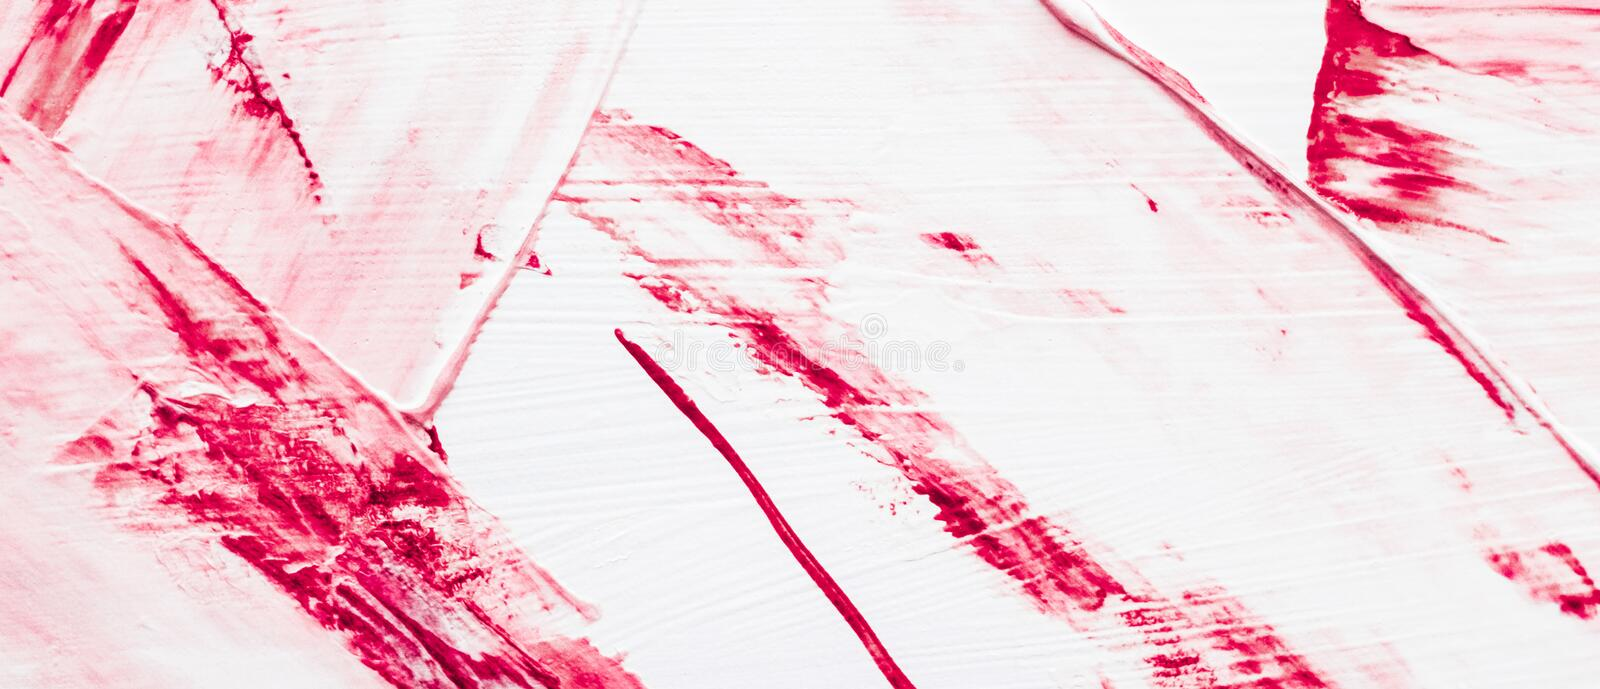 Artistic abstract texture background, pink acrylic paint brush stroke, textured ink oil splash as print backdrop for luxury stock image